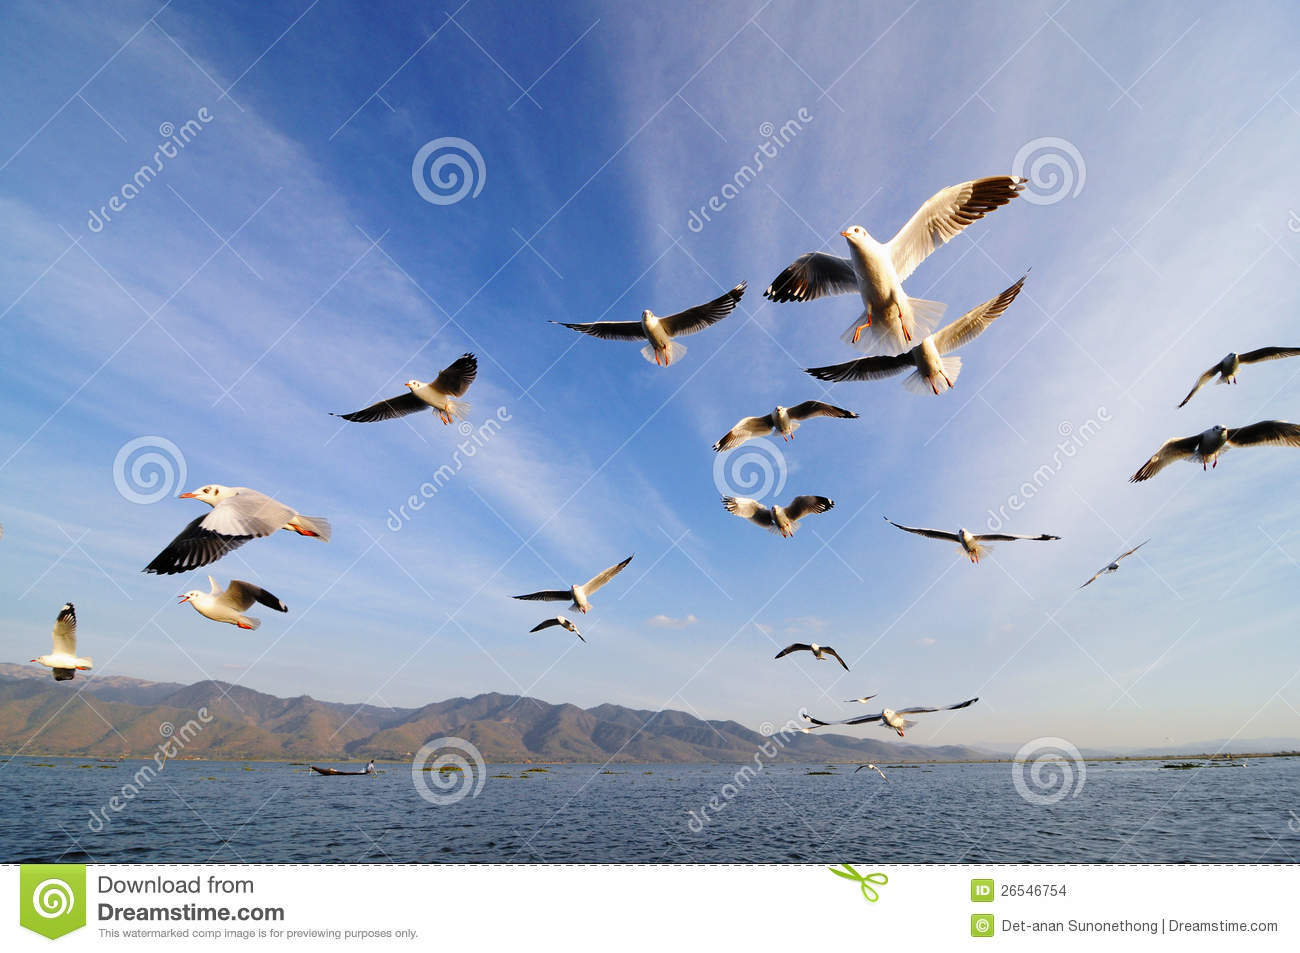 Flying Birds Free Stock Photos Download 3 416 Free Stock: Flying Birds In Blue Sky Stock Photo. Image Of Lake